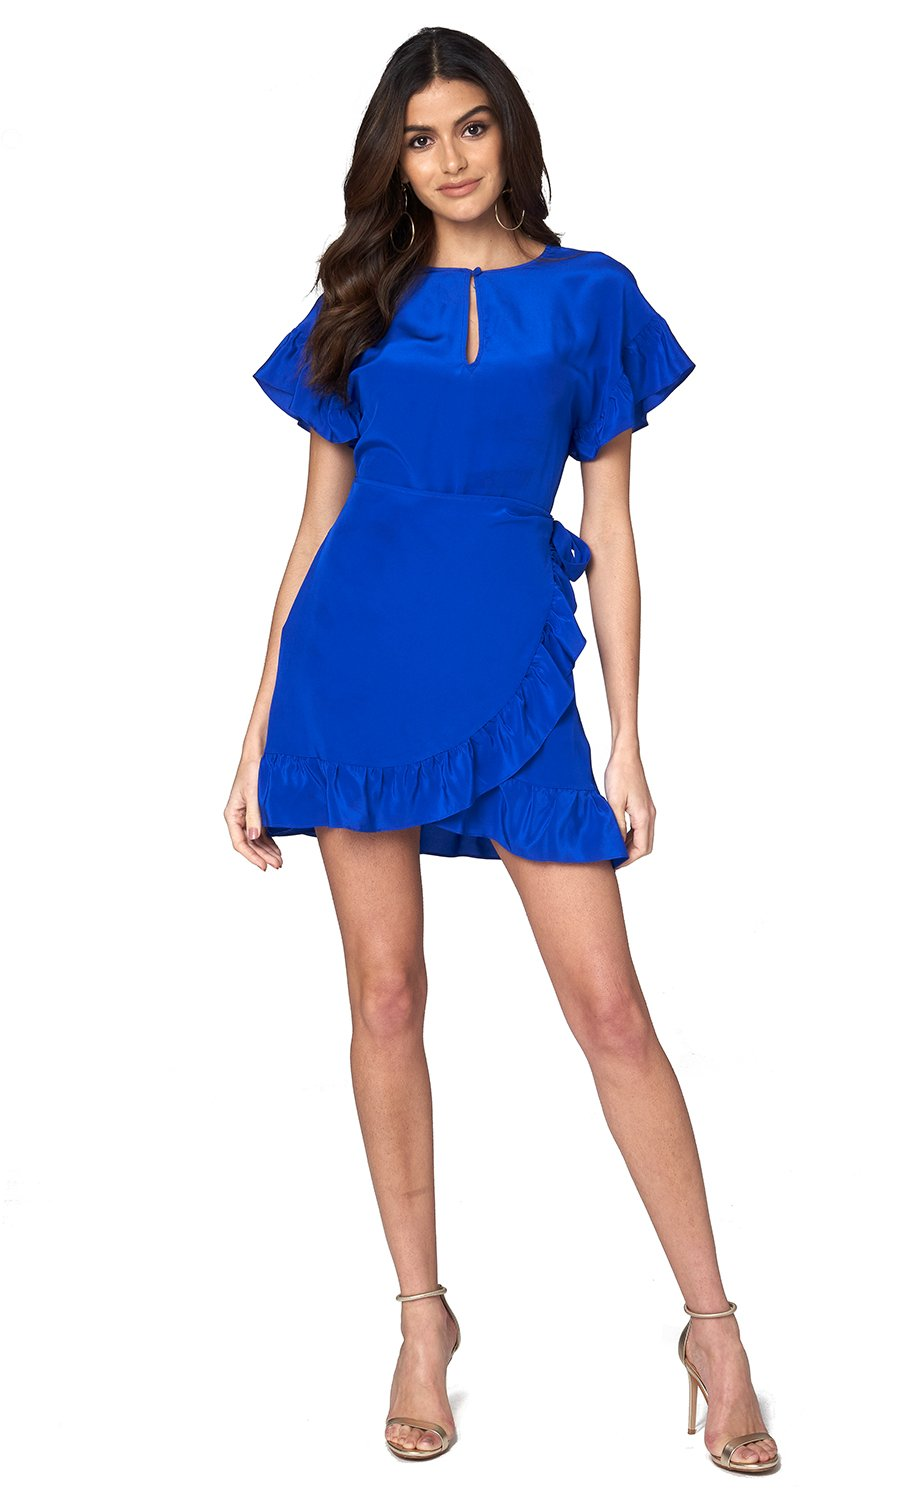 Jennifer Hope Clothing Silk Tori Ruffle Short Mini Dress in Cobalt Blue